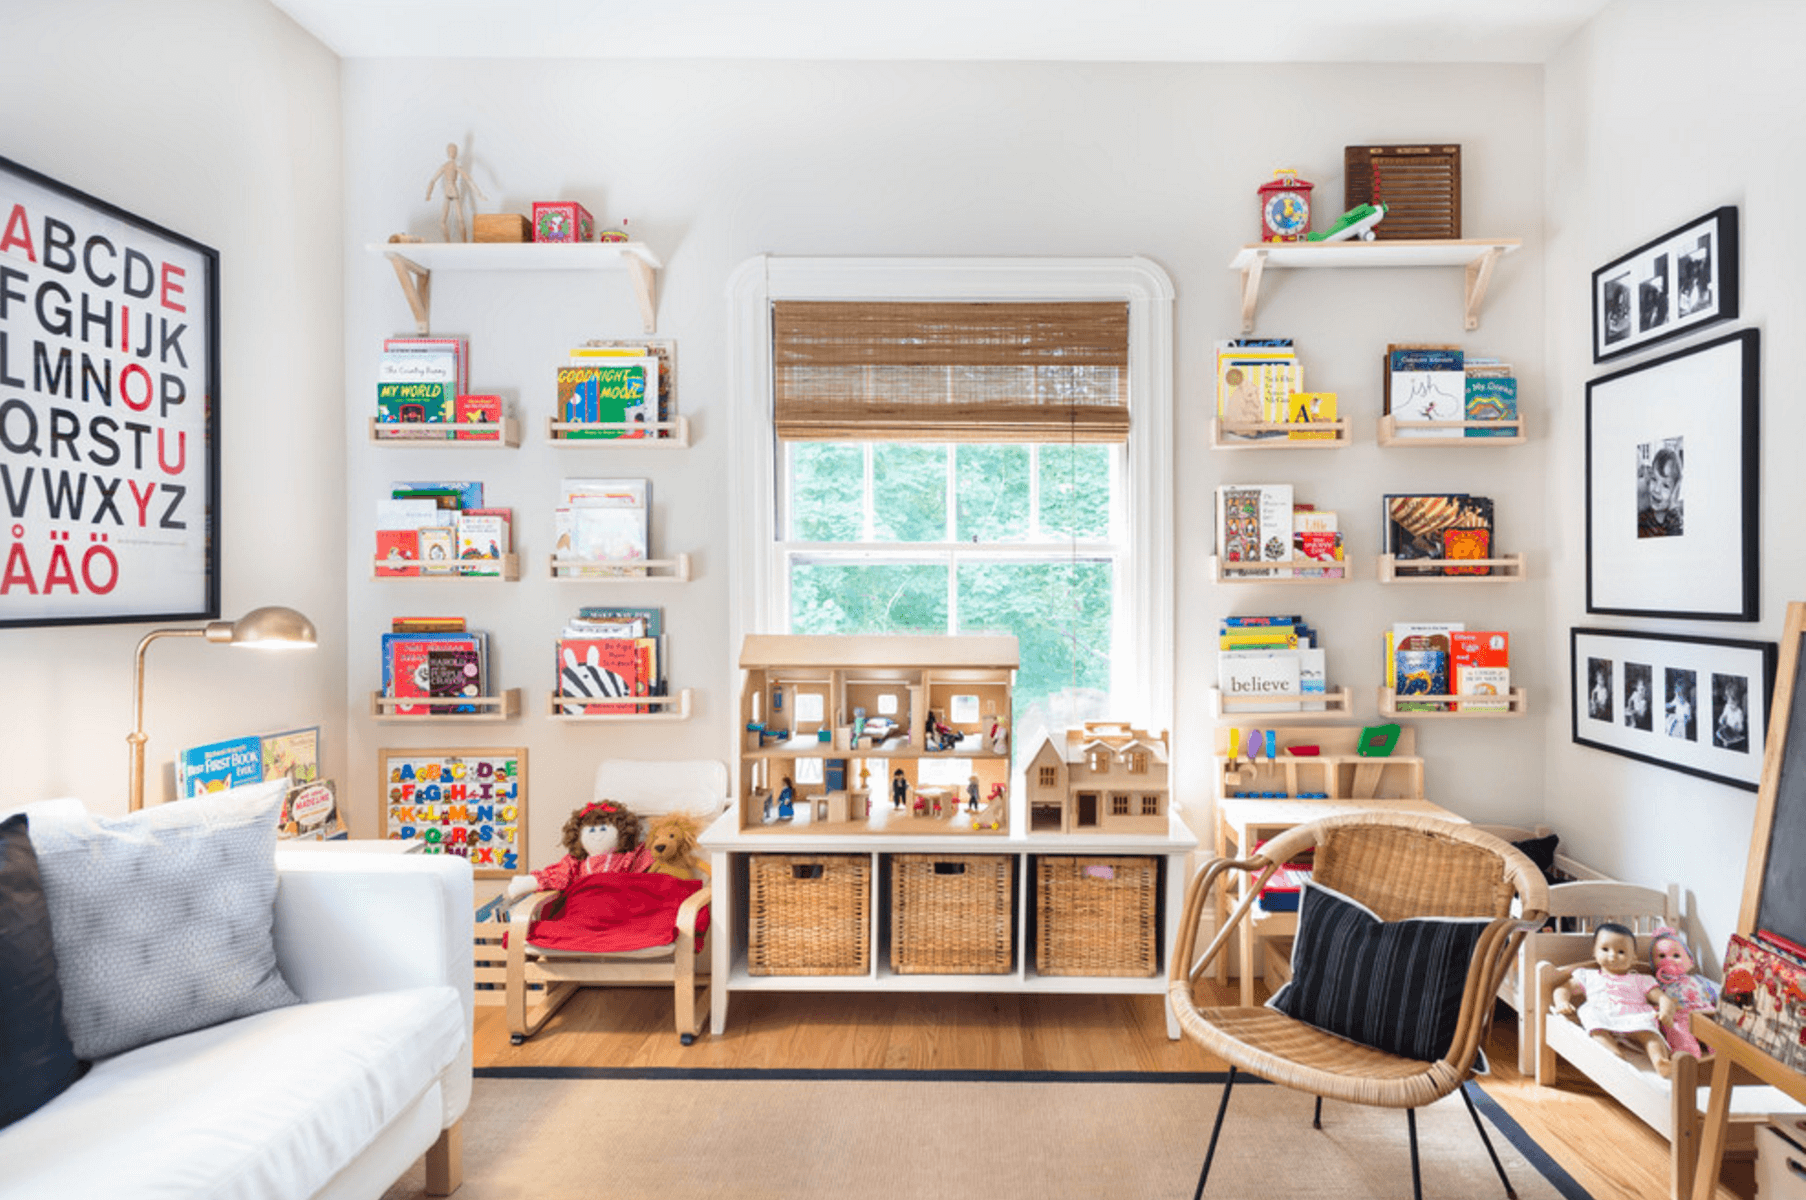 28 Ideas for Adding Color to a Kids Room | Freshome.com®